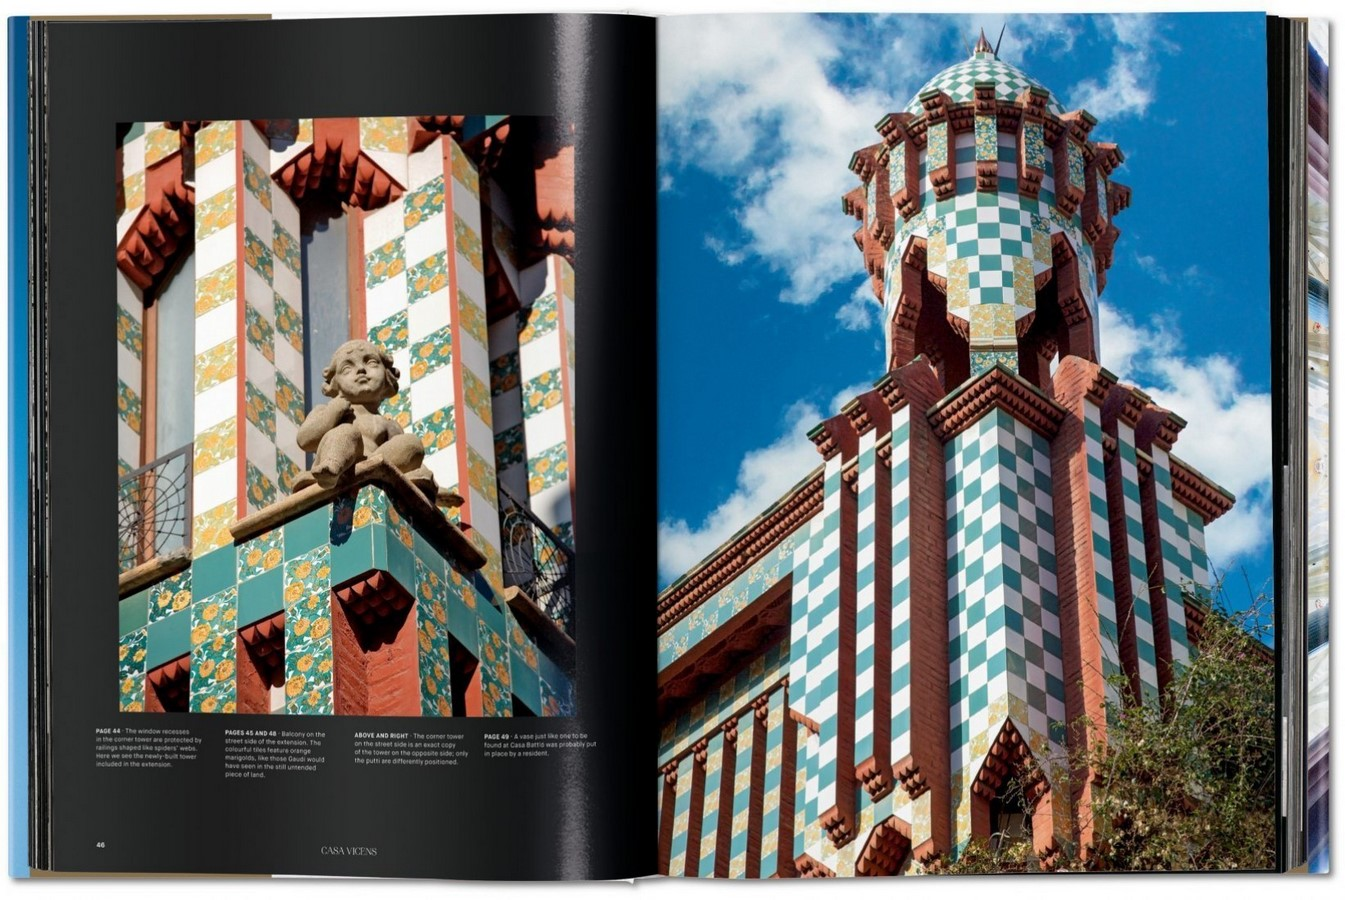 Book in Focus: Gaudi - The complete buildings by Rainer Zerbst - Sheet6